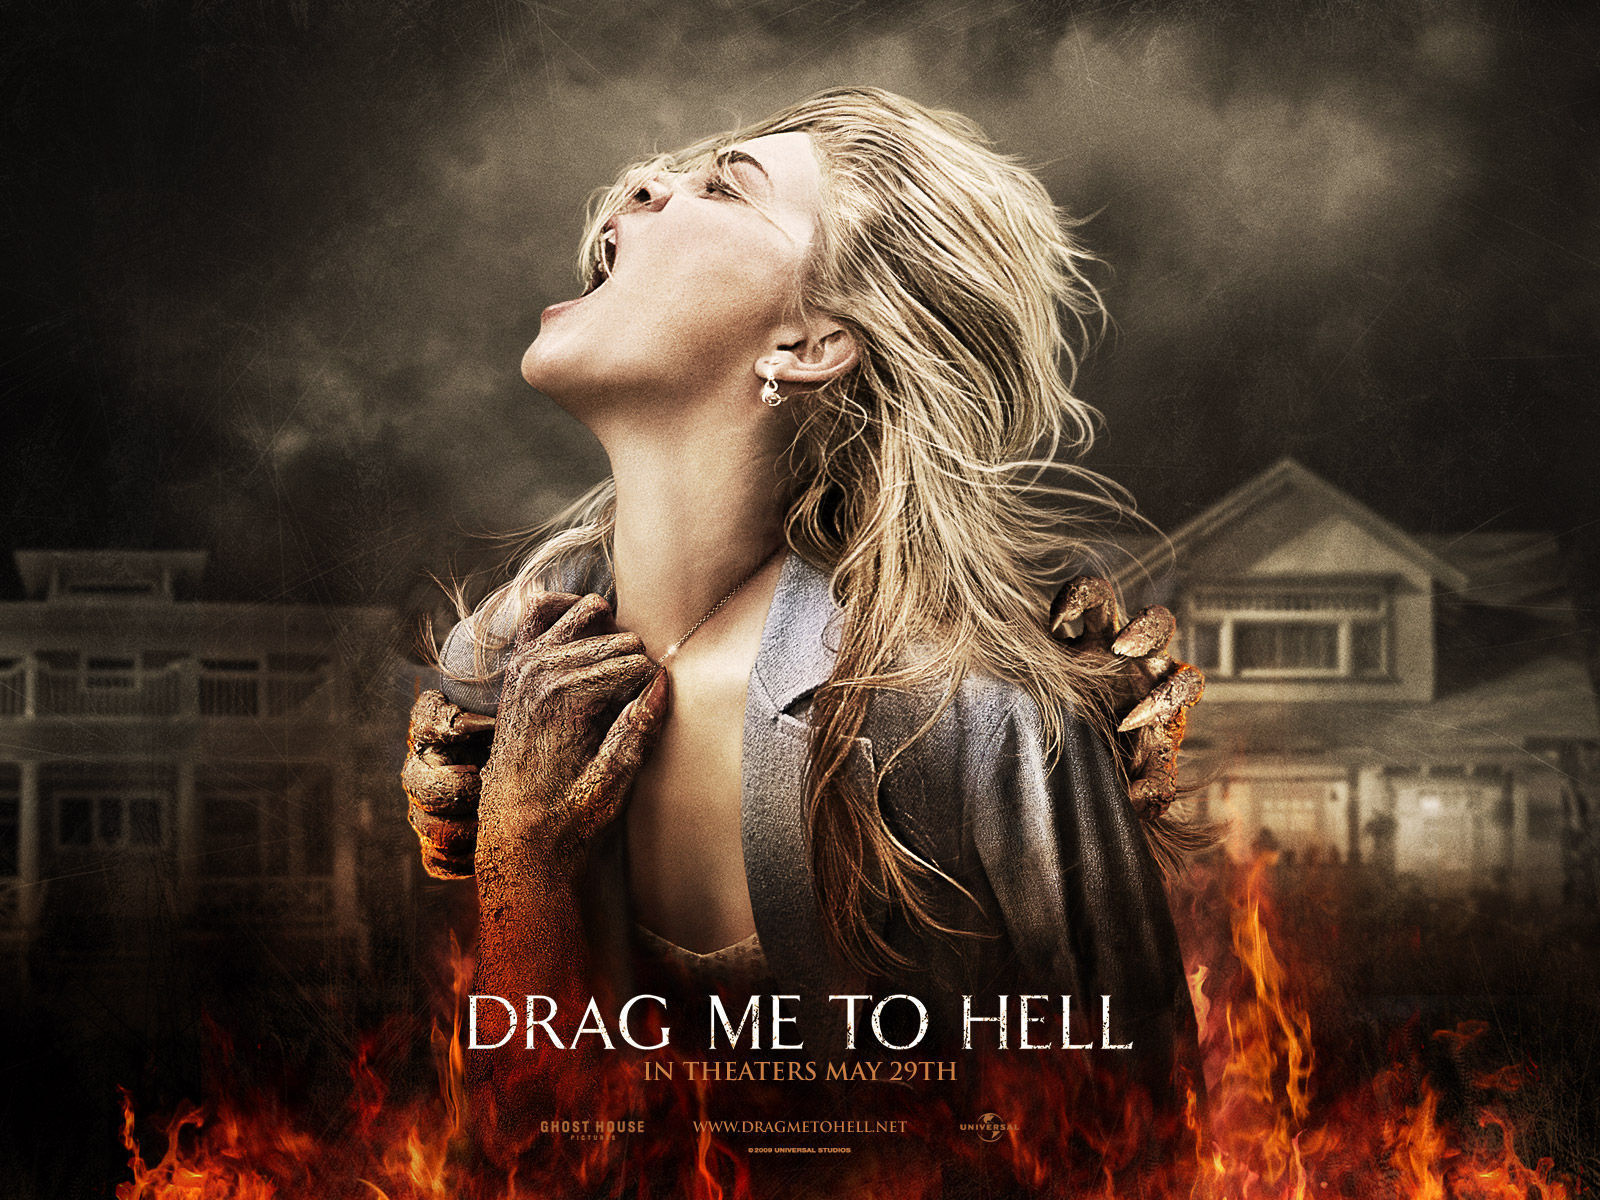 horror movies images drag me to hell wallpapers hd wallpaper and